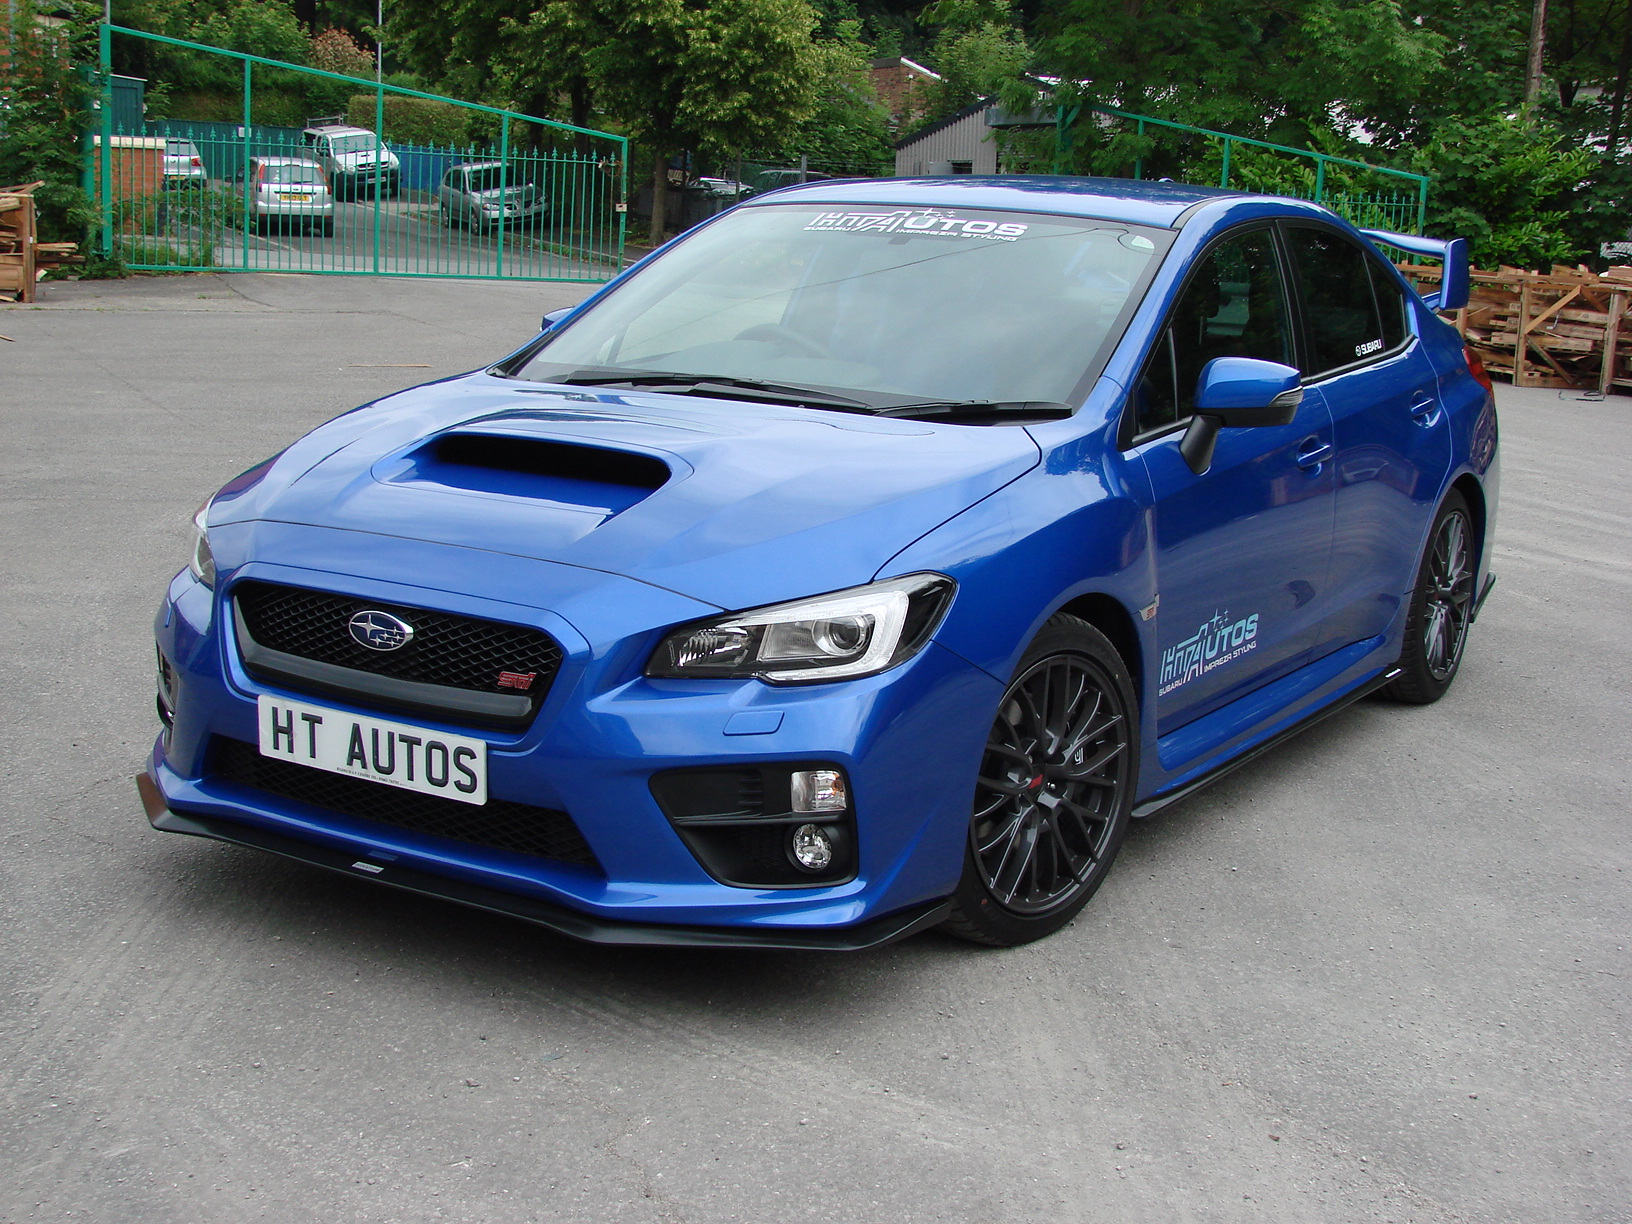 subaru 2015 wrx sti bottomline body kit lip kit. Black Bedroom Furniture Sets. Home Design Ideas